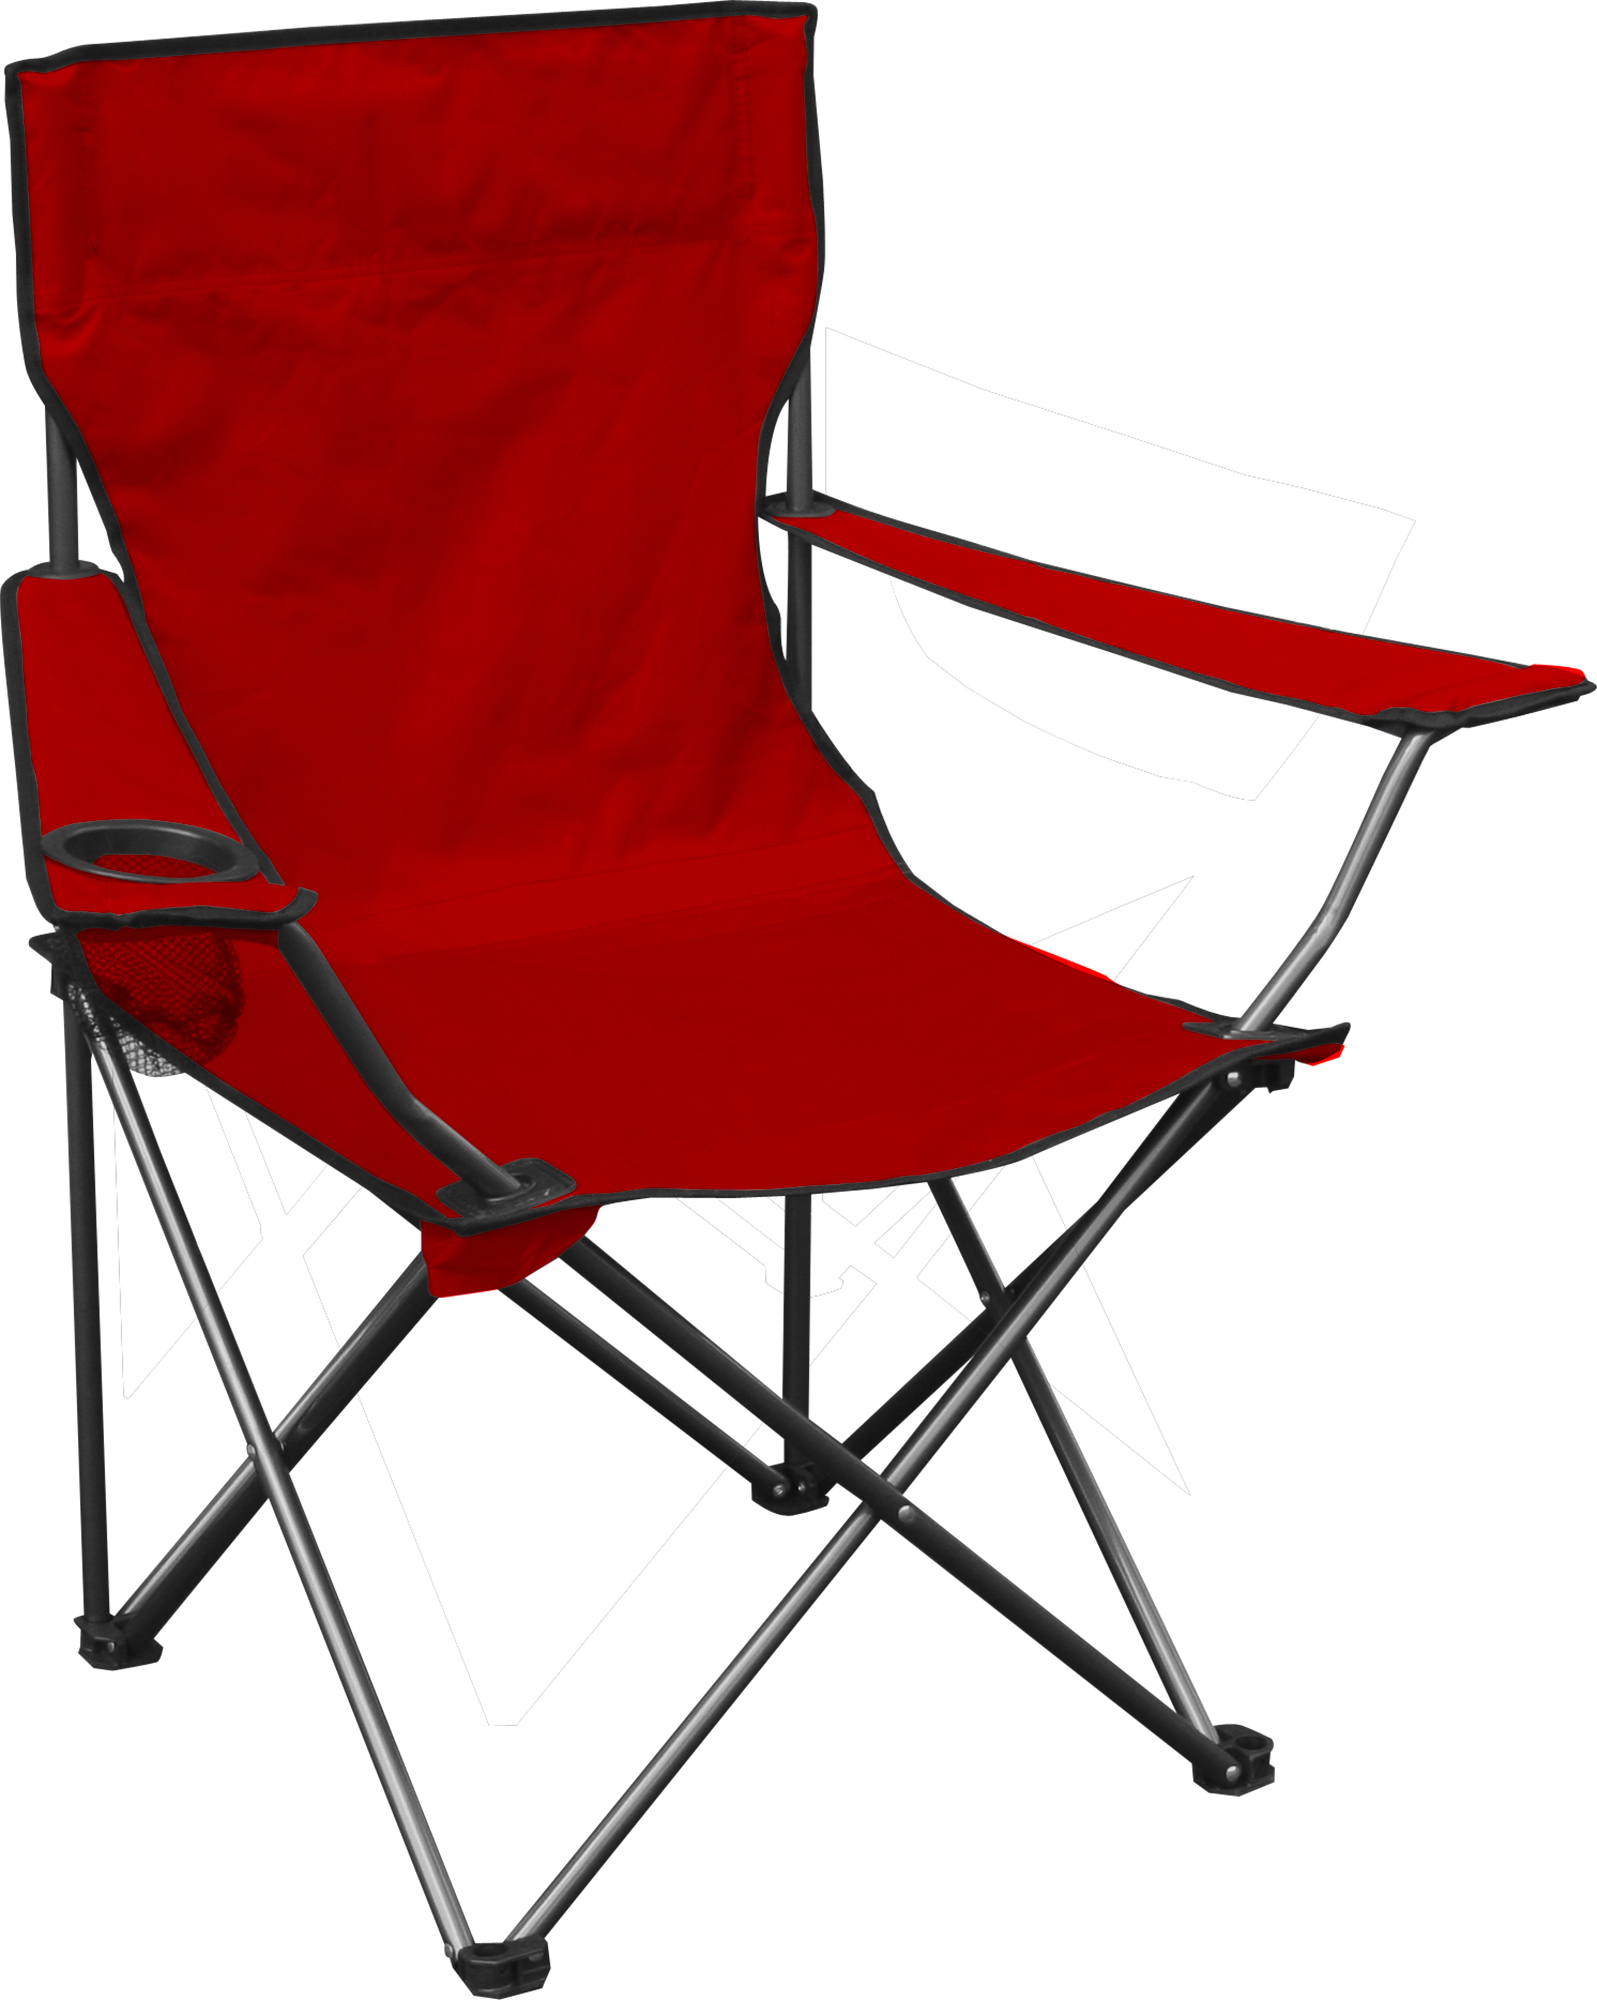 Quad Chair, Red Fabric, Silver Frame